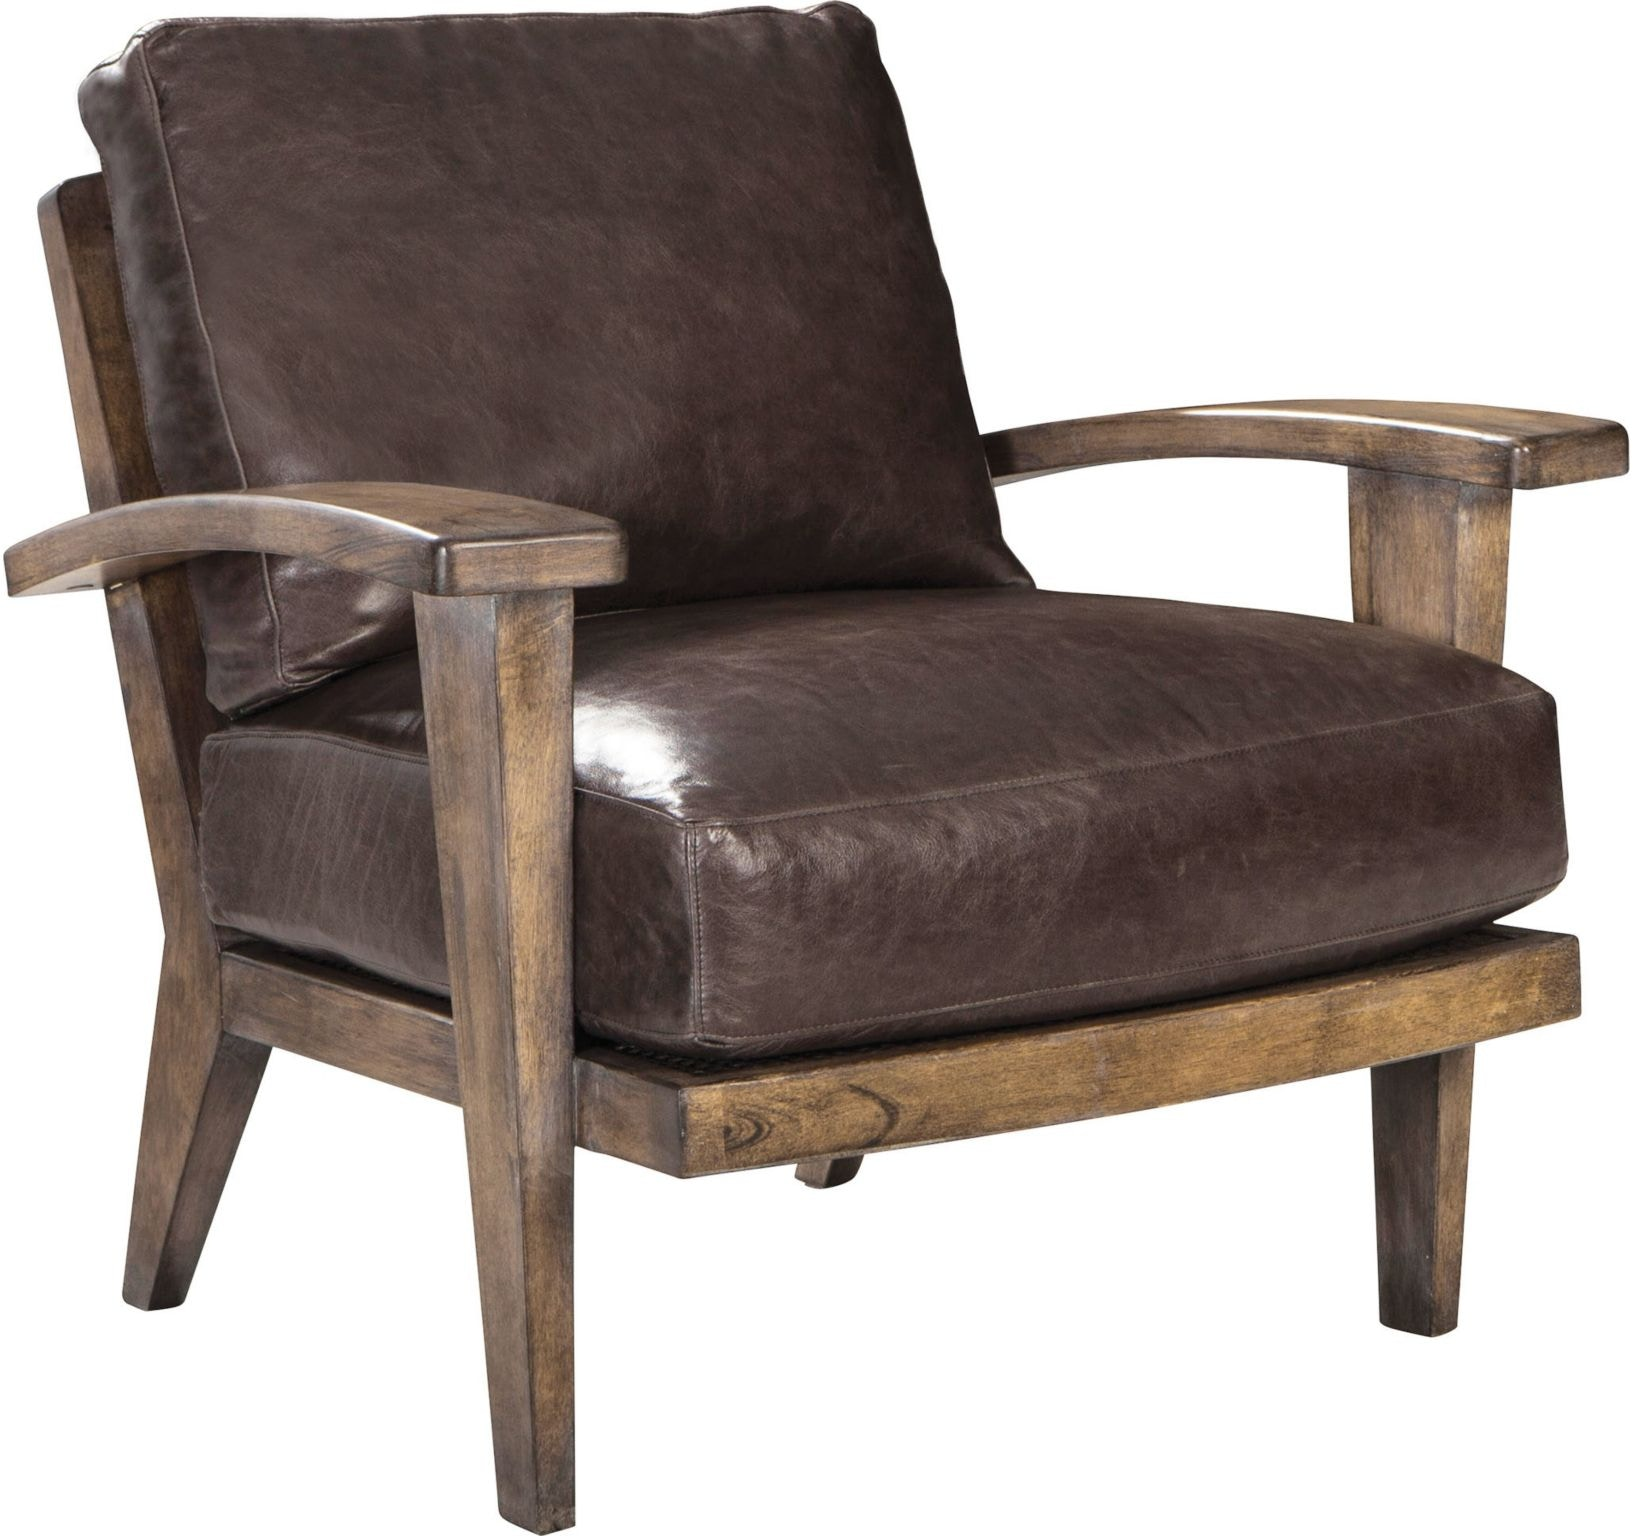 Thomasville Hillcrest Cane Back Chair HS2652 15